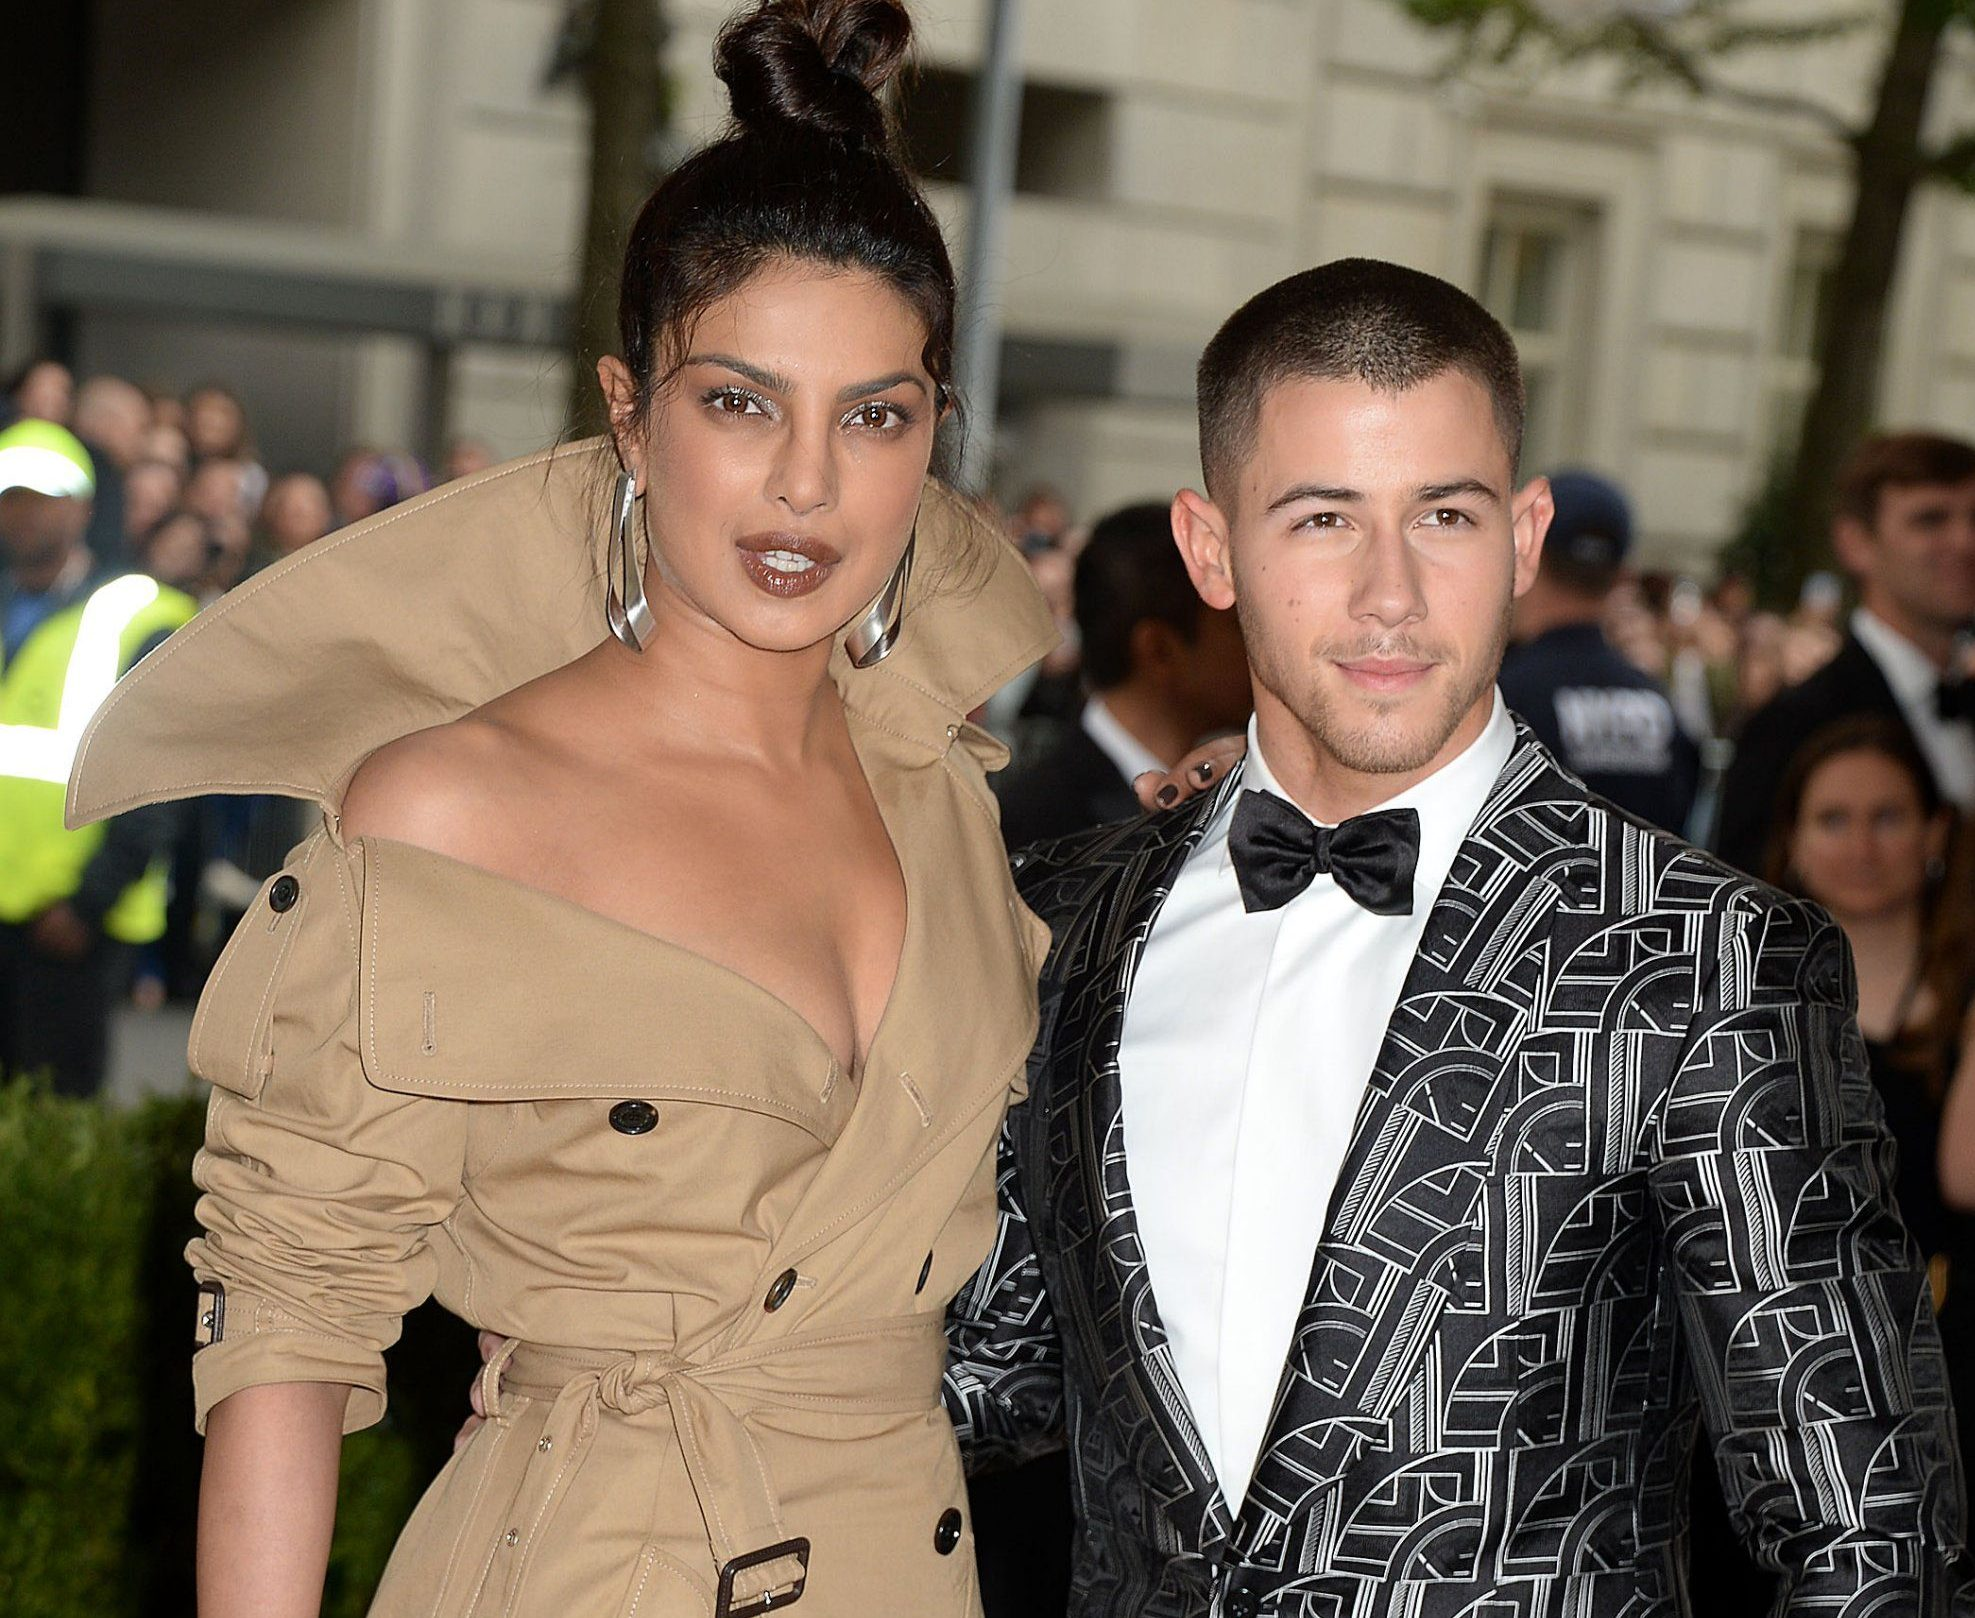 Mandatory Credit: Photo by Broadimage/REX/Shutterstock (8773327gs) Priyanka Chopra, Nick Jonas The Costume Institute Benefit celebrating the opening of Rei Kawakubo/Comme des Garcons: Art of the In-Between, Arrivals, The Metropolitan Museum of Art, New York, USA - 01 May 2017 2017 Costume Institute Benefit celebrating the opening of Rei Kawakubo/Comme des Gar?ons: Art of the In-Between